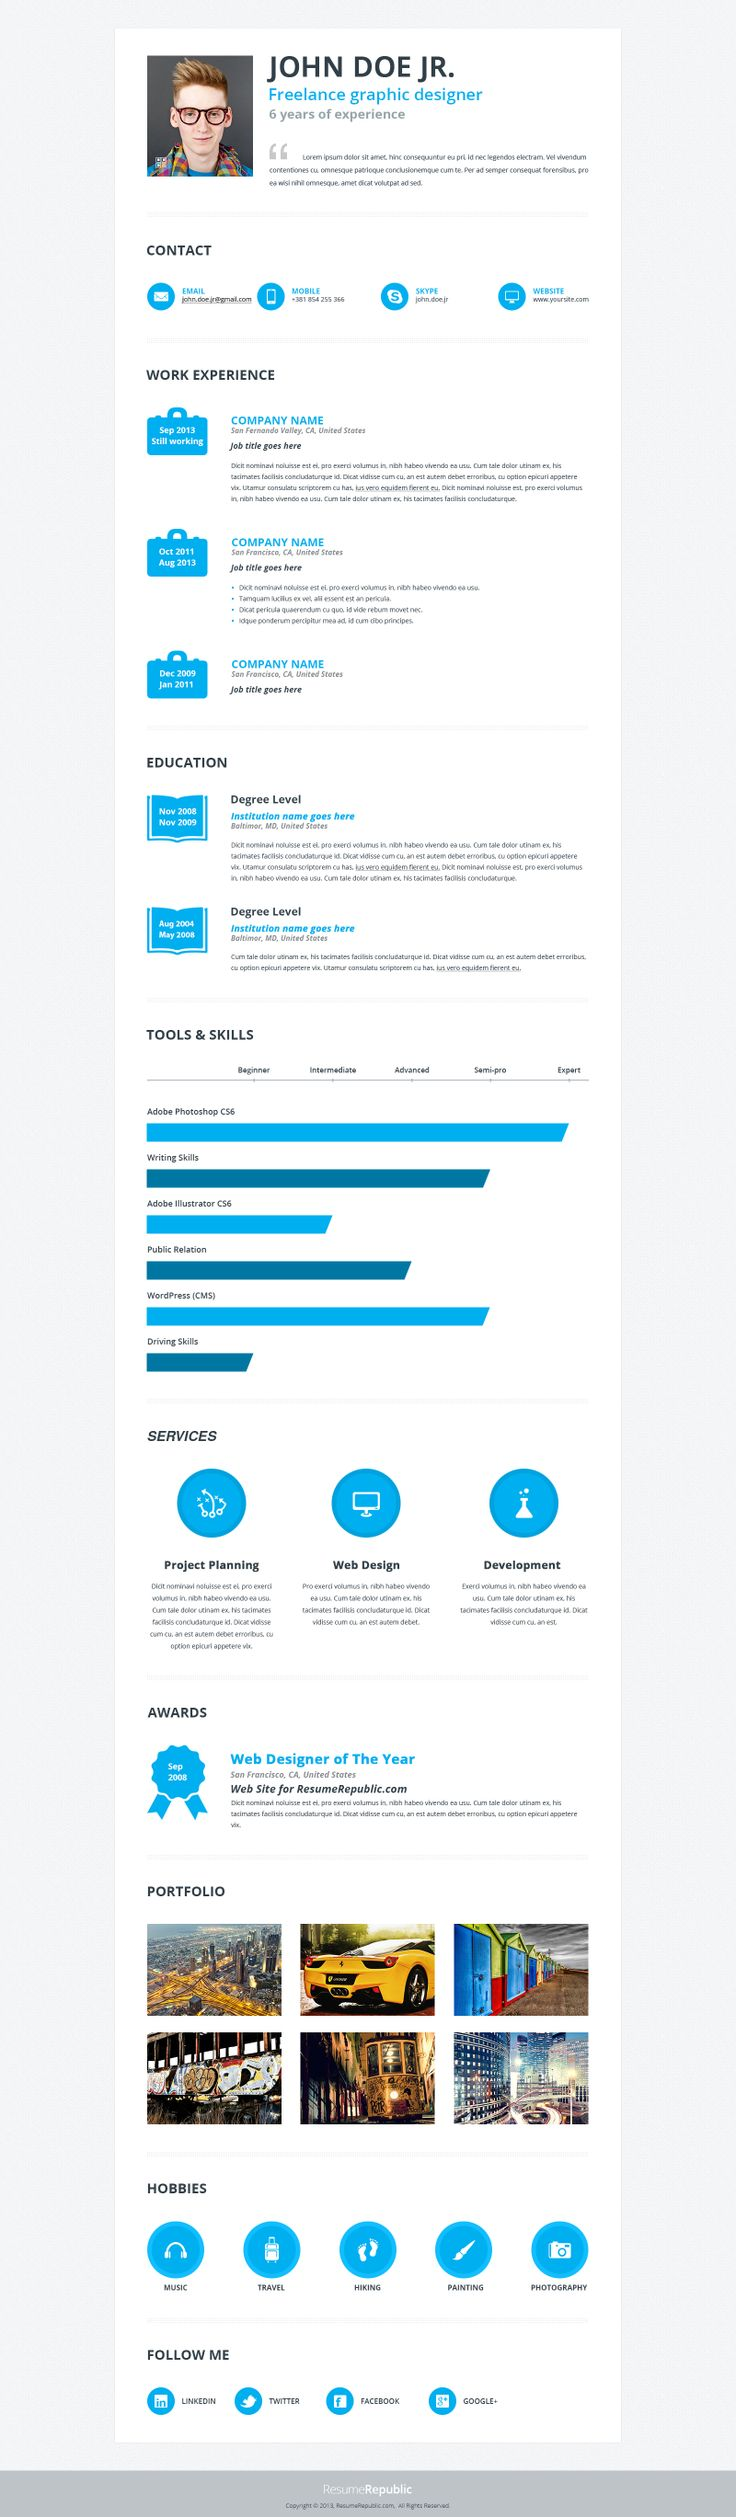 images about resume templates resumerepublic waterli is simple but effective premium resume template designed for those who want a simple